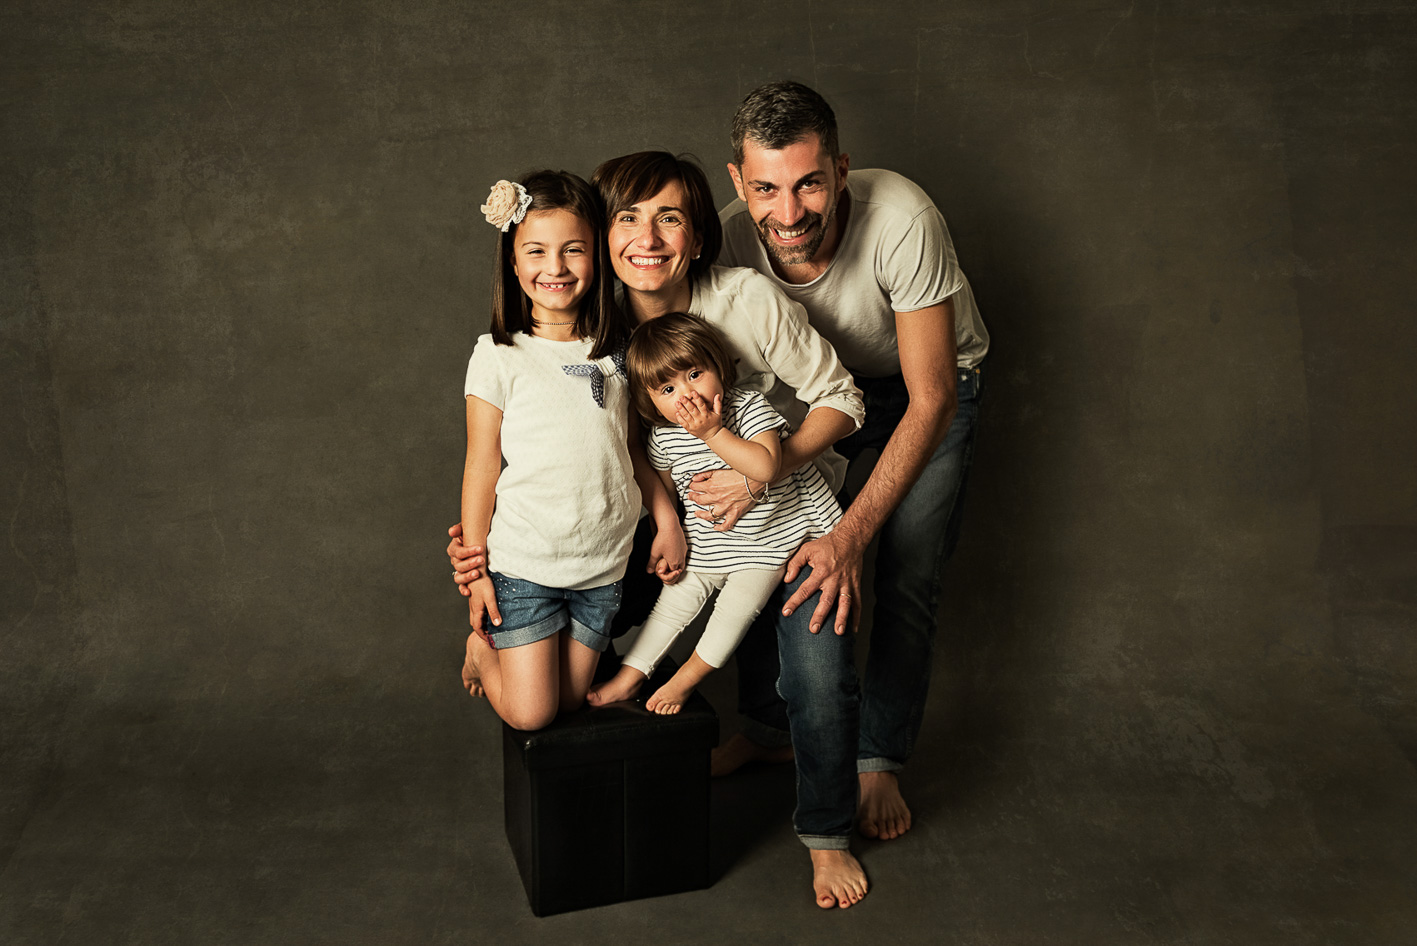 family-photo-tagg-photography-8